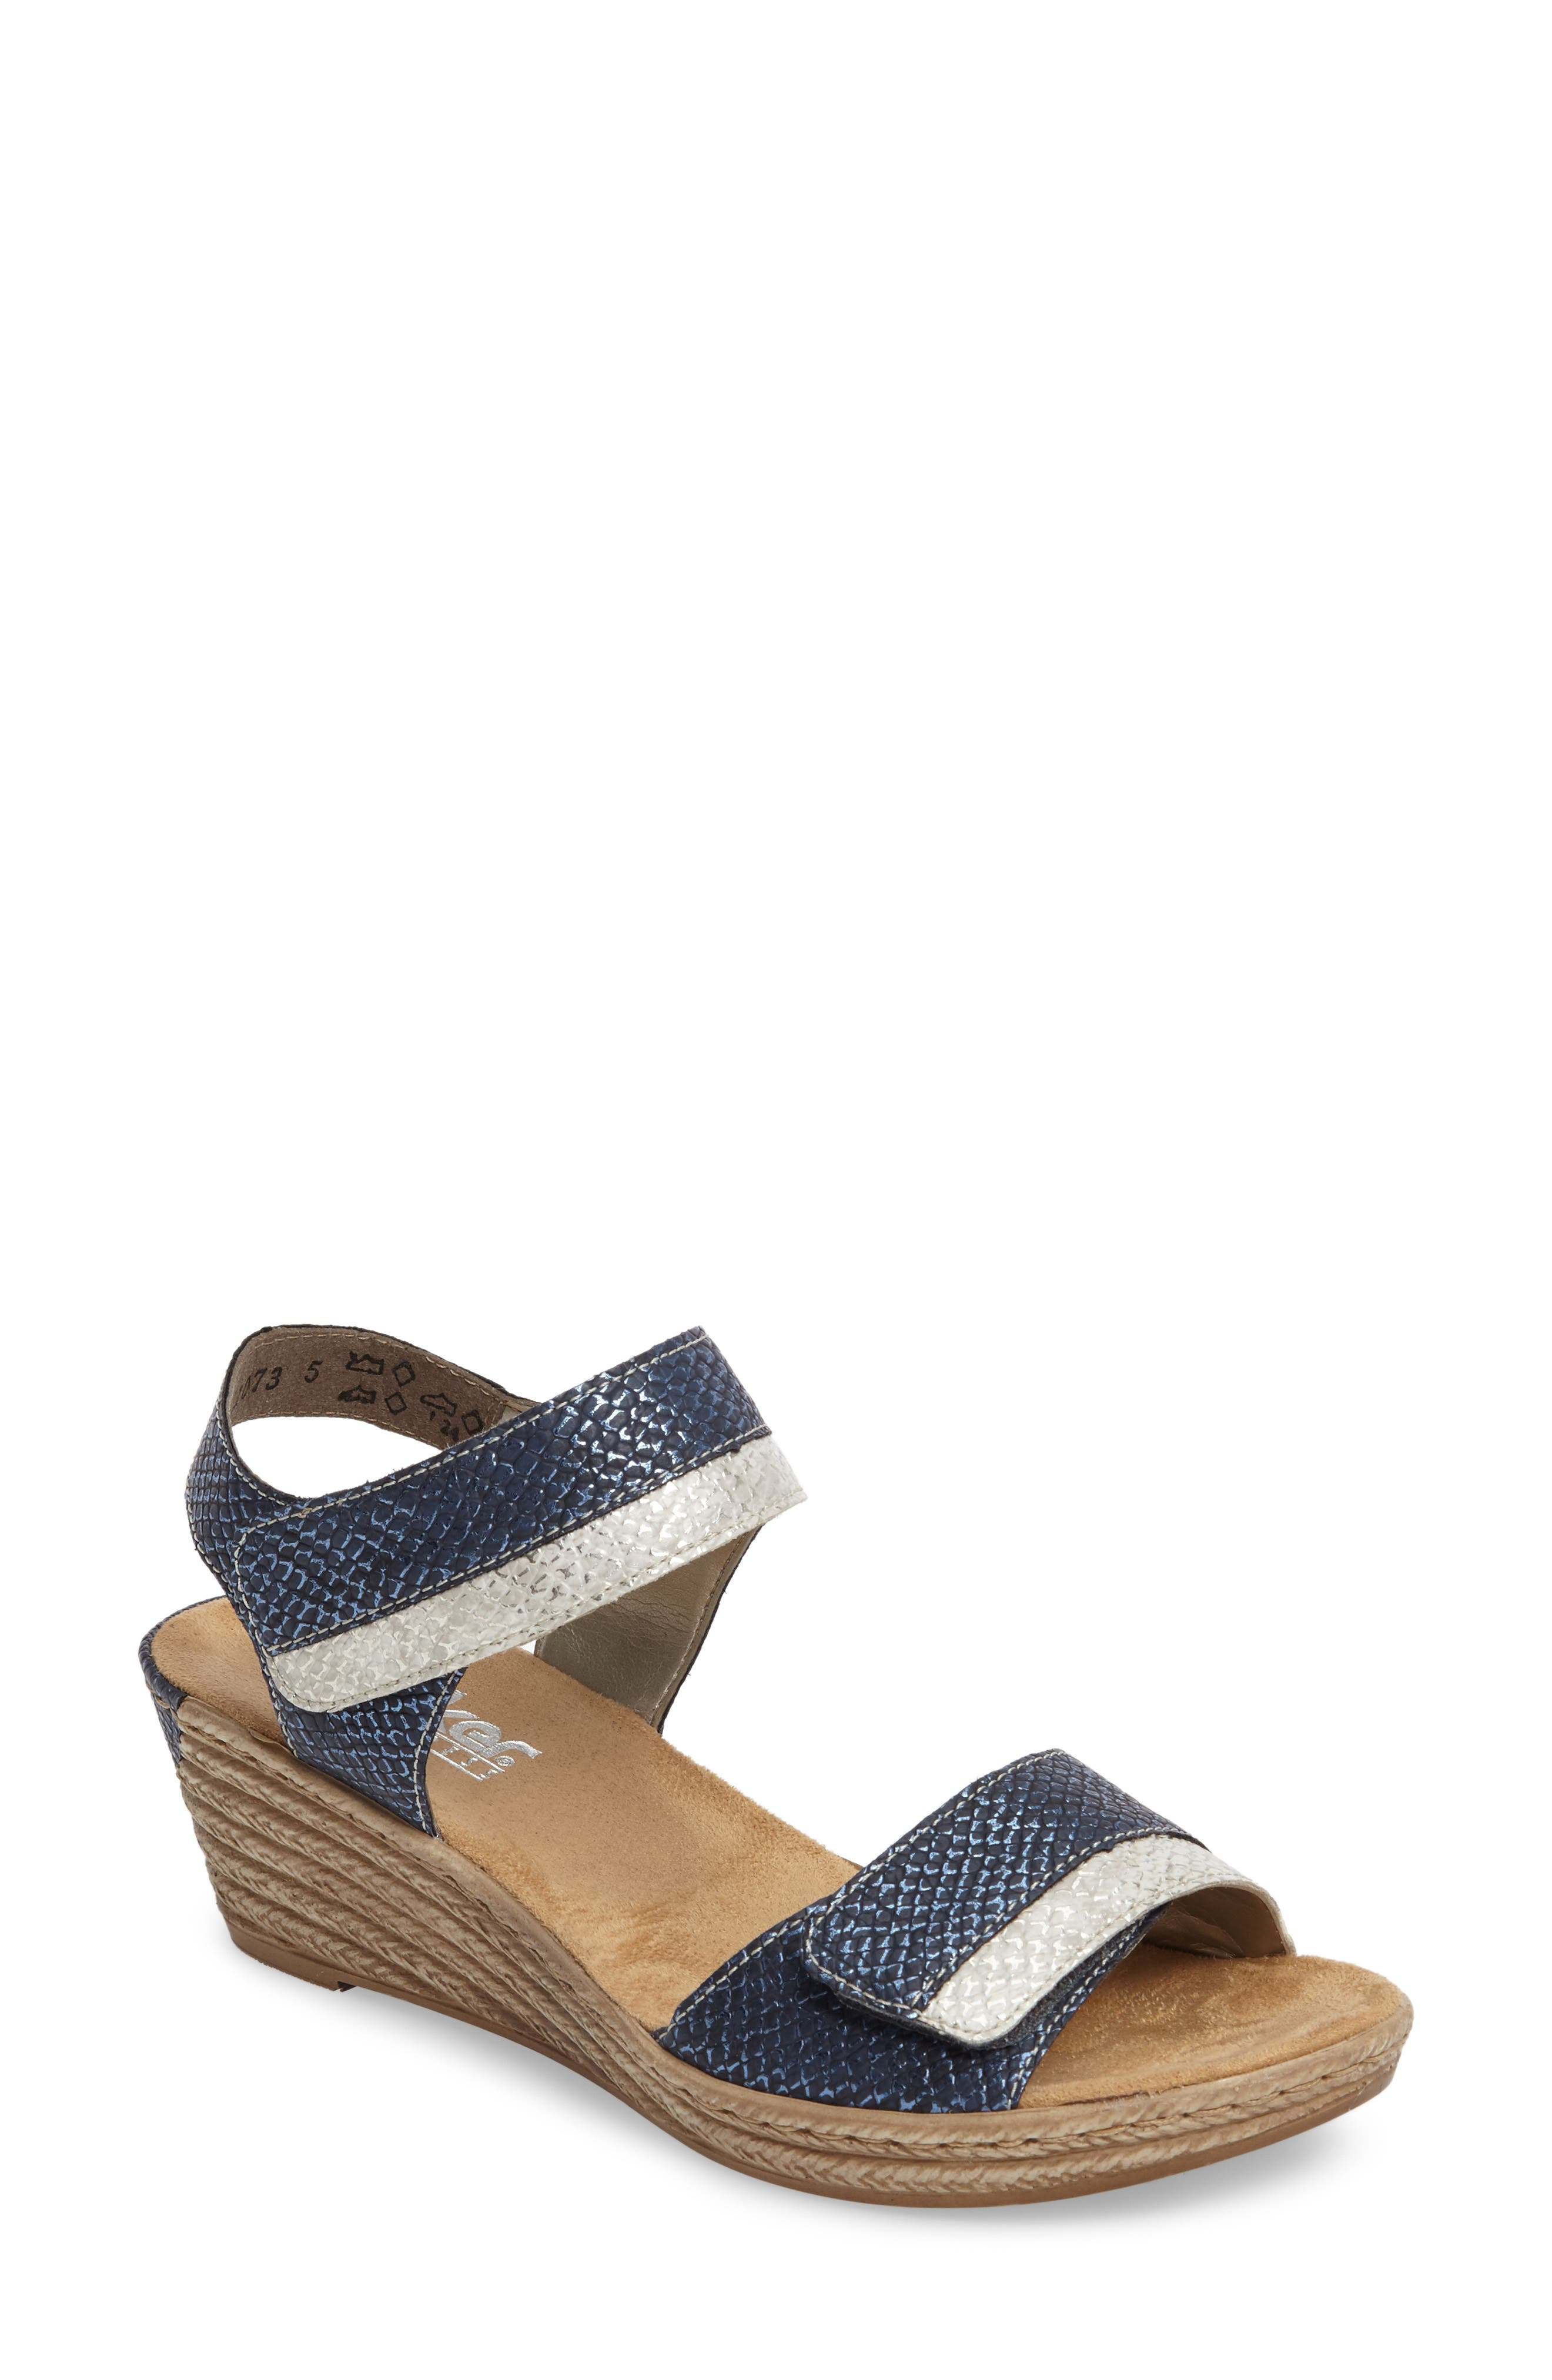 Main Image - Rieker Antistress Fanni 70 Wedge Sandal (Women)